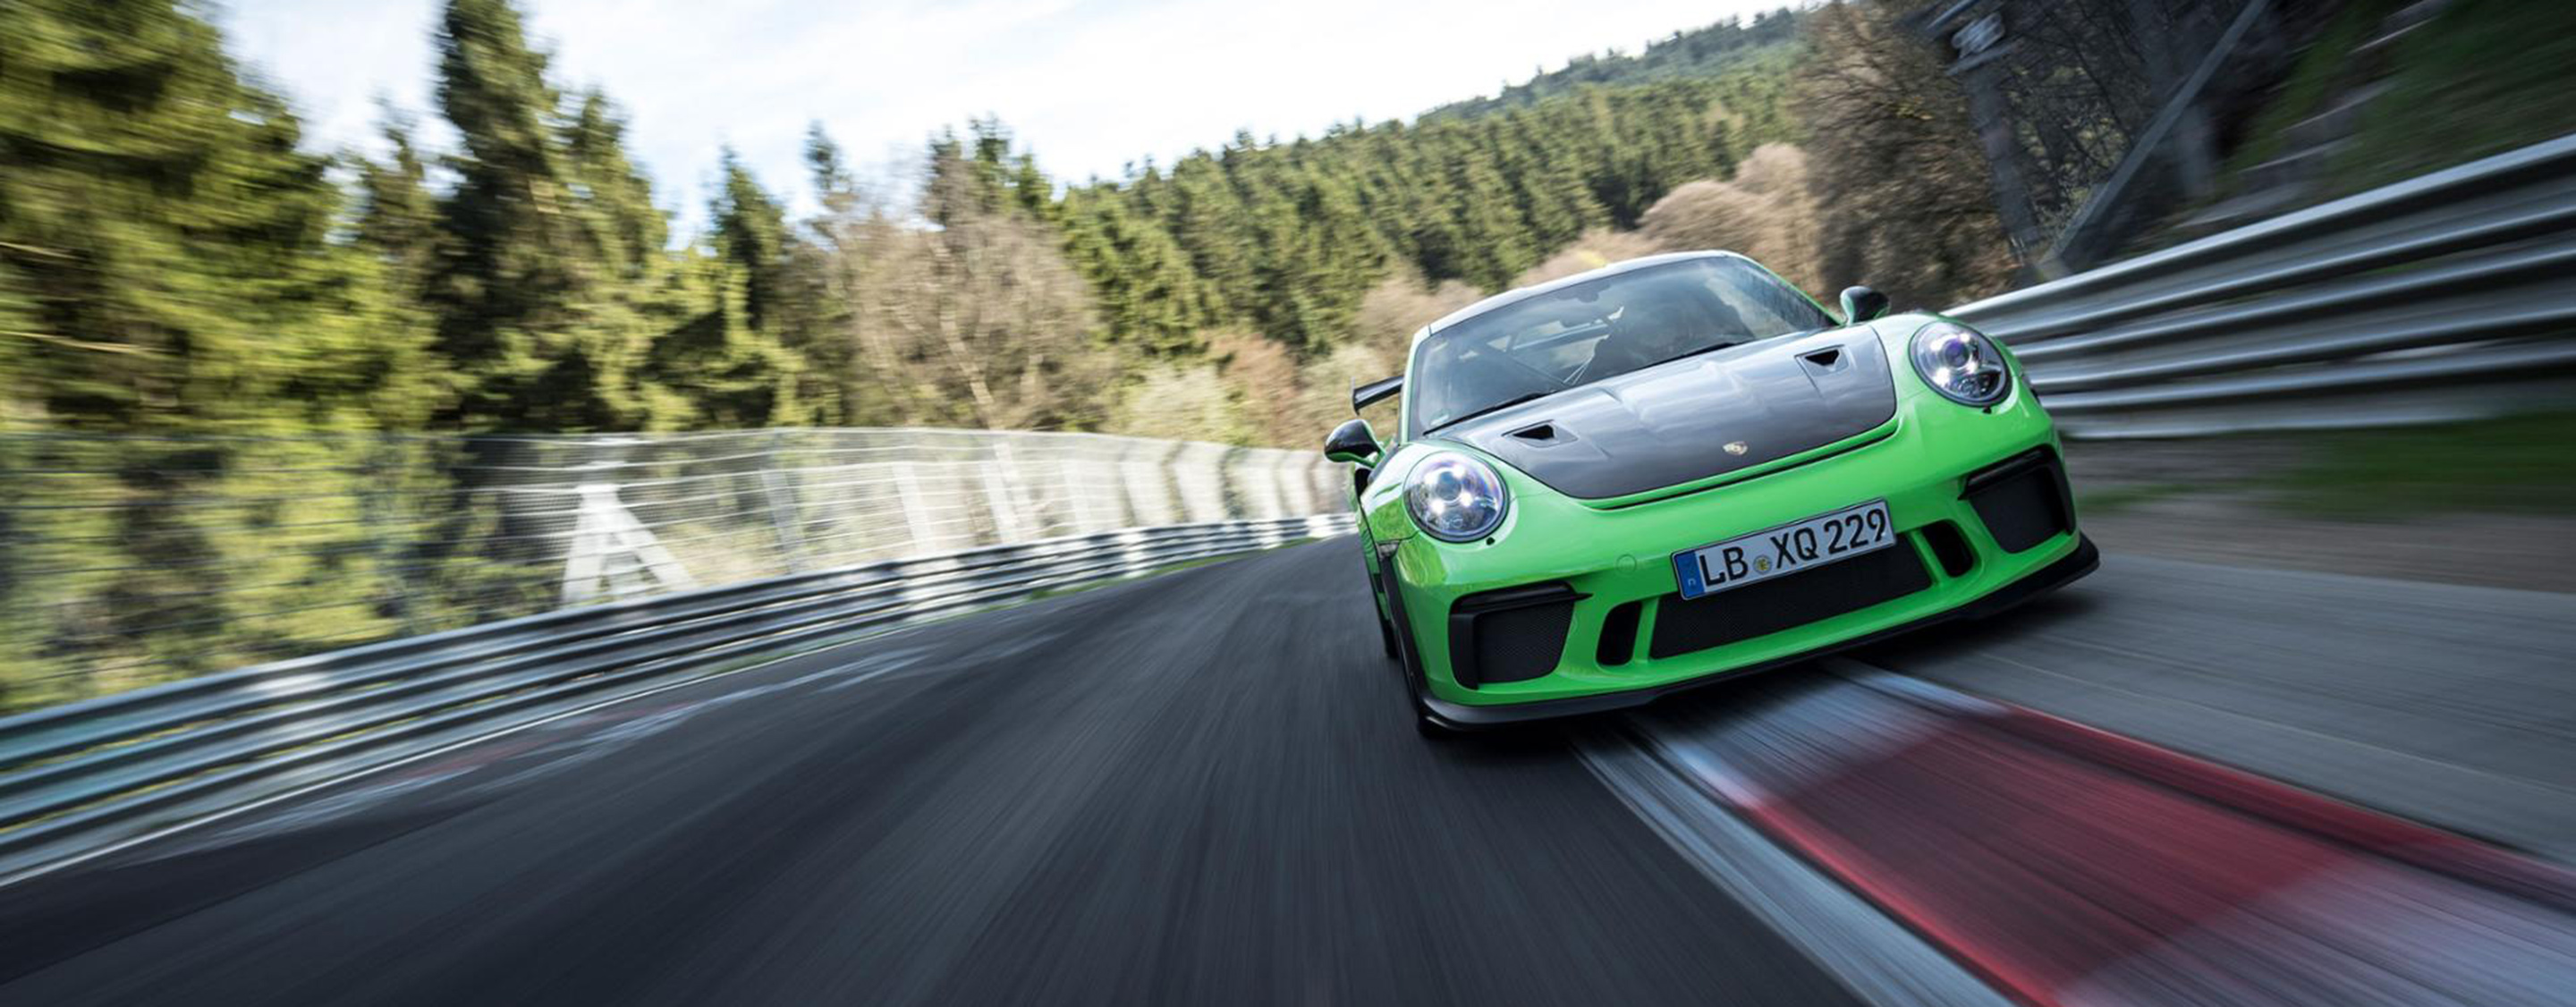 TrackWorthy - Porsche 911 GT3 RS at the Nürburgring Nordschleife (3) (Unicode Encoding Conflict)